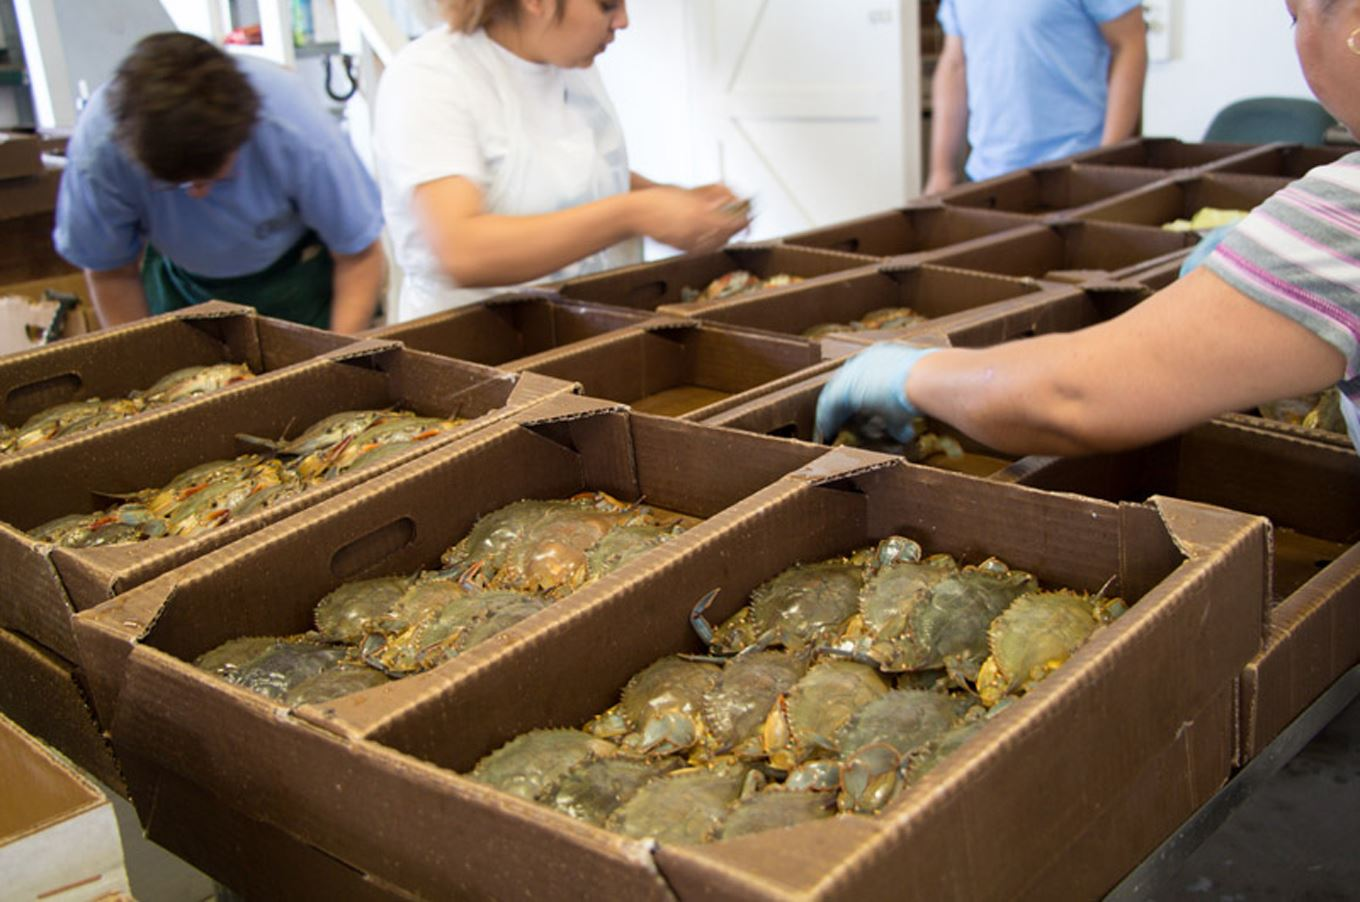 20140611hoseaharvest5543food Packing soft-shell crabs for shipping at O'Neals Sea Harvest in Outer Banks, N.C.